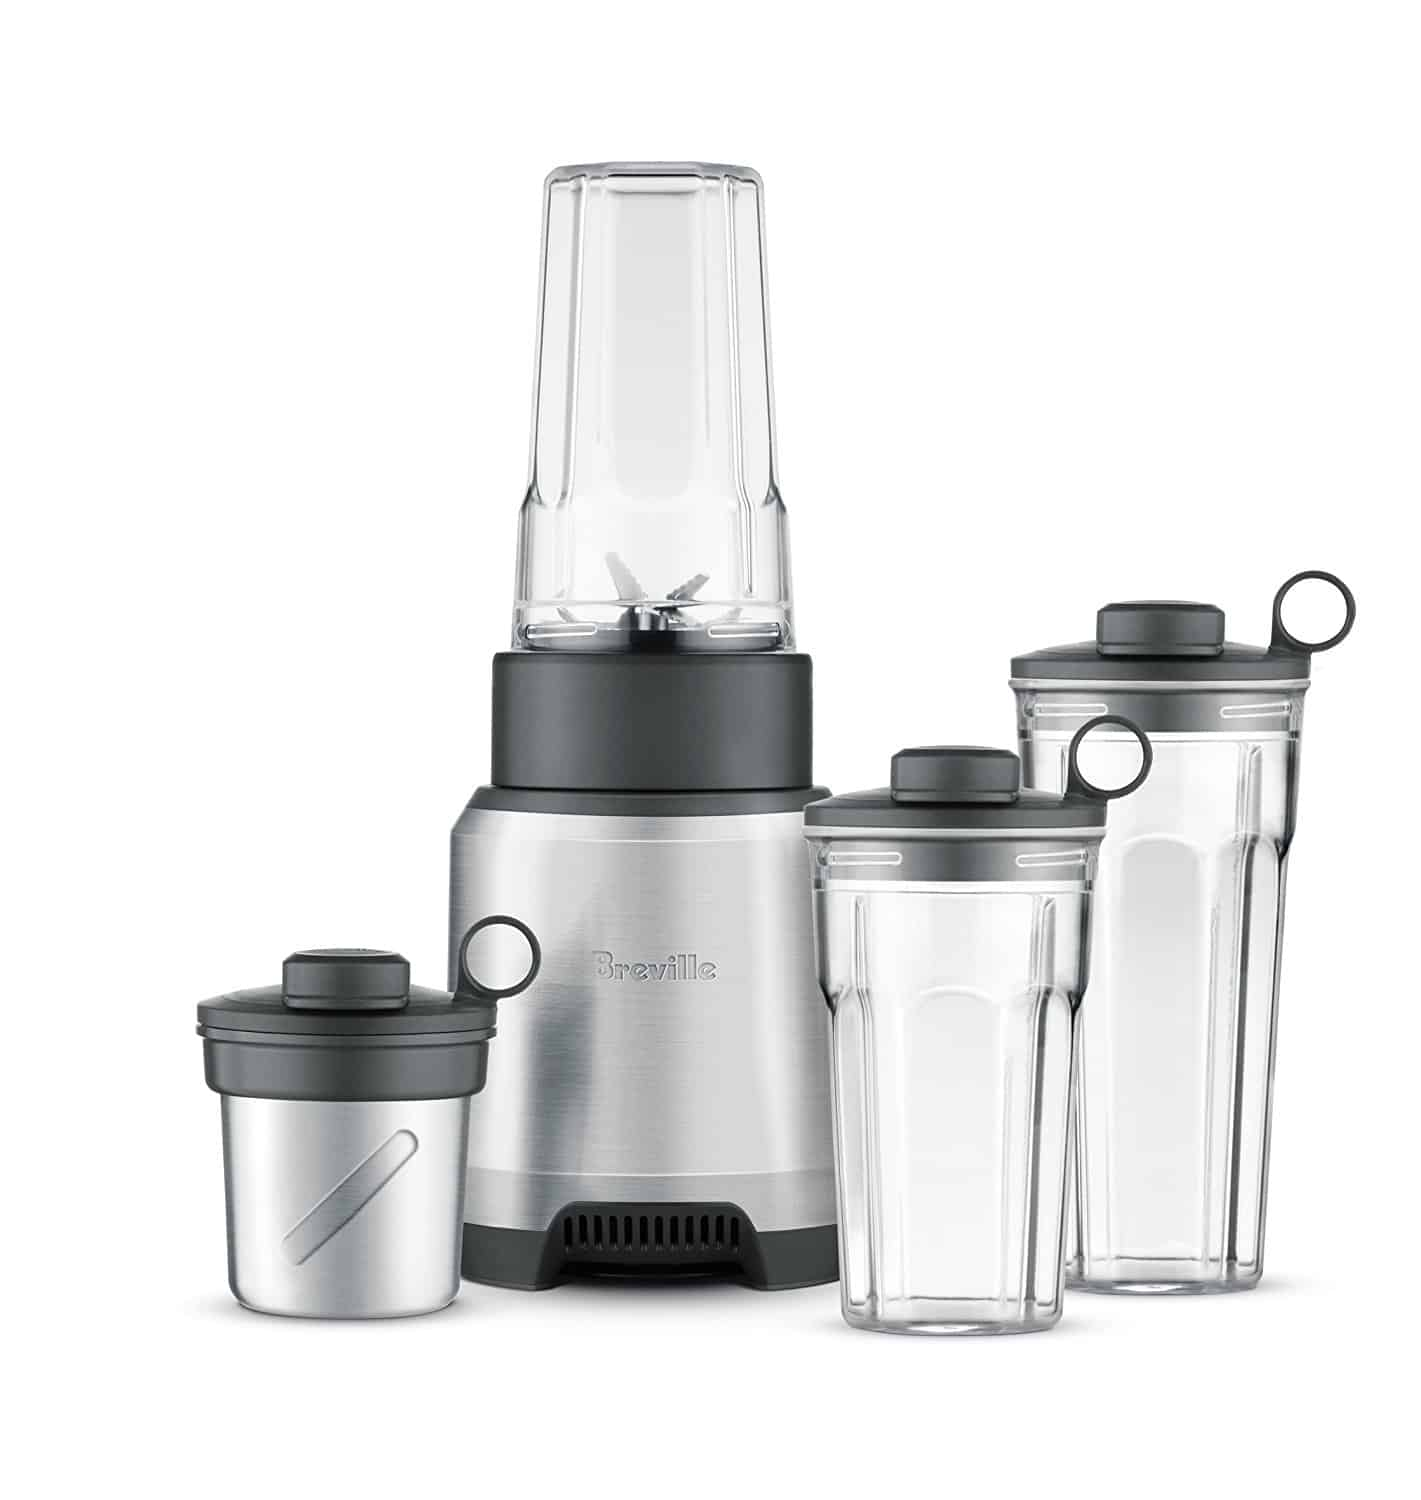 Make great smoothies with the Breville smoothie maker.